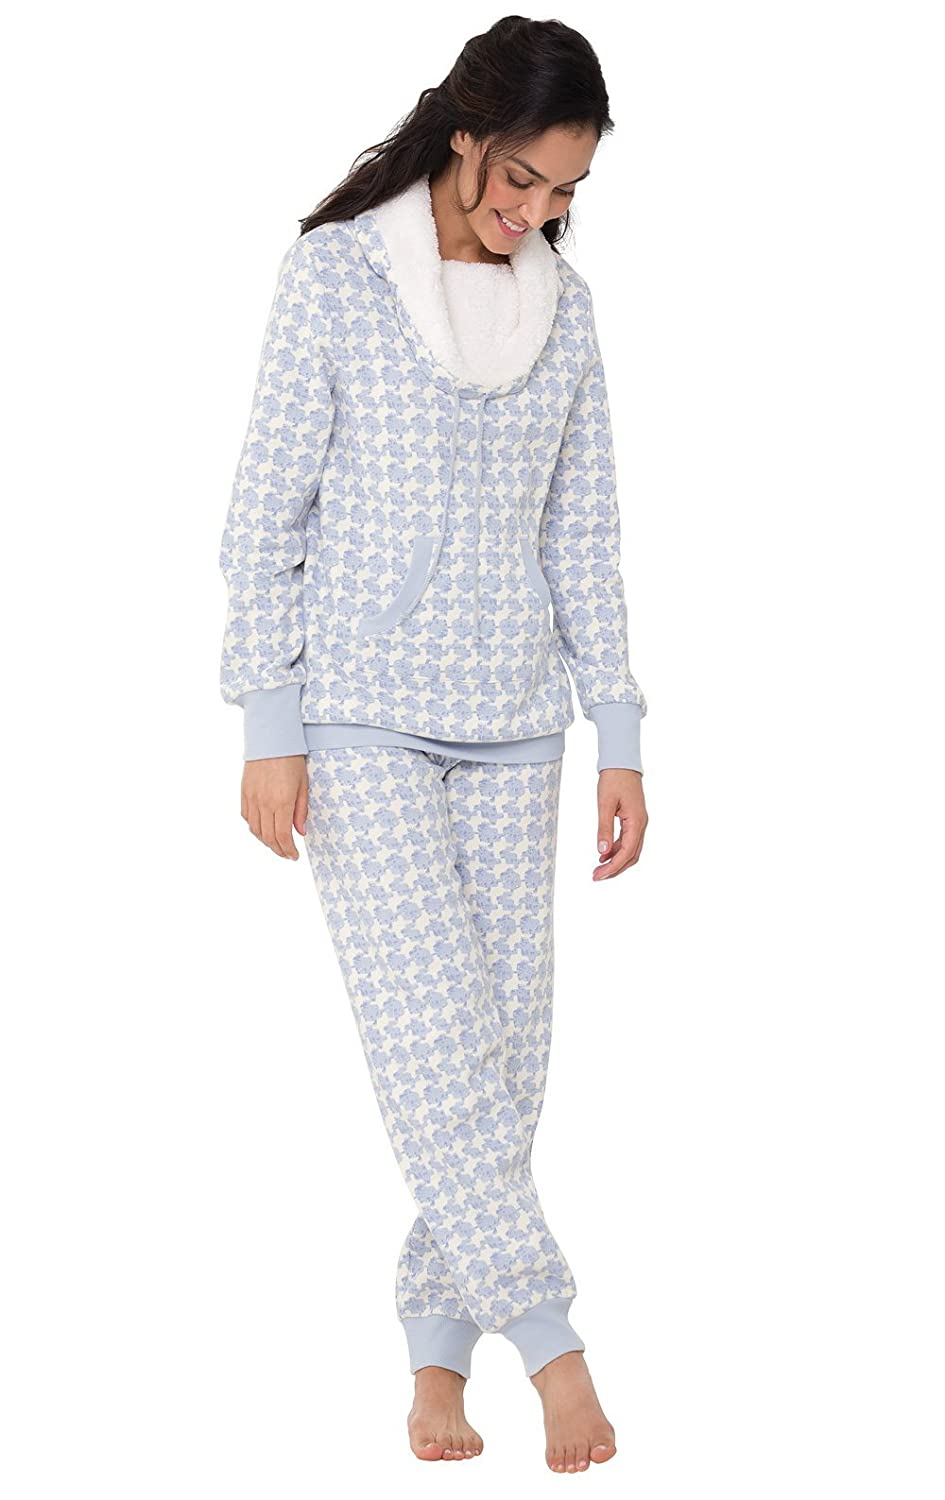 040d5410f6b2 PajamaGram Soft Fleece Pajamas Women - Womens Pajama Sets at Amazon Women s  Clothing store